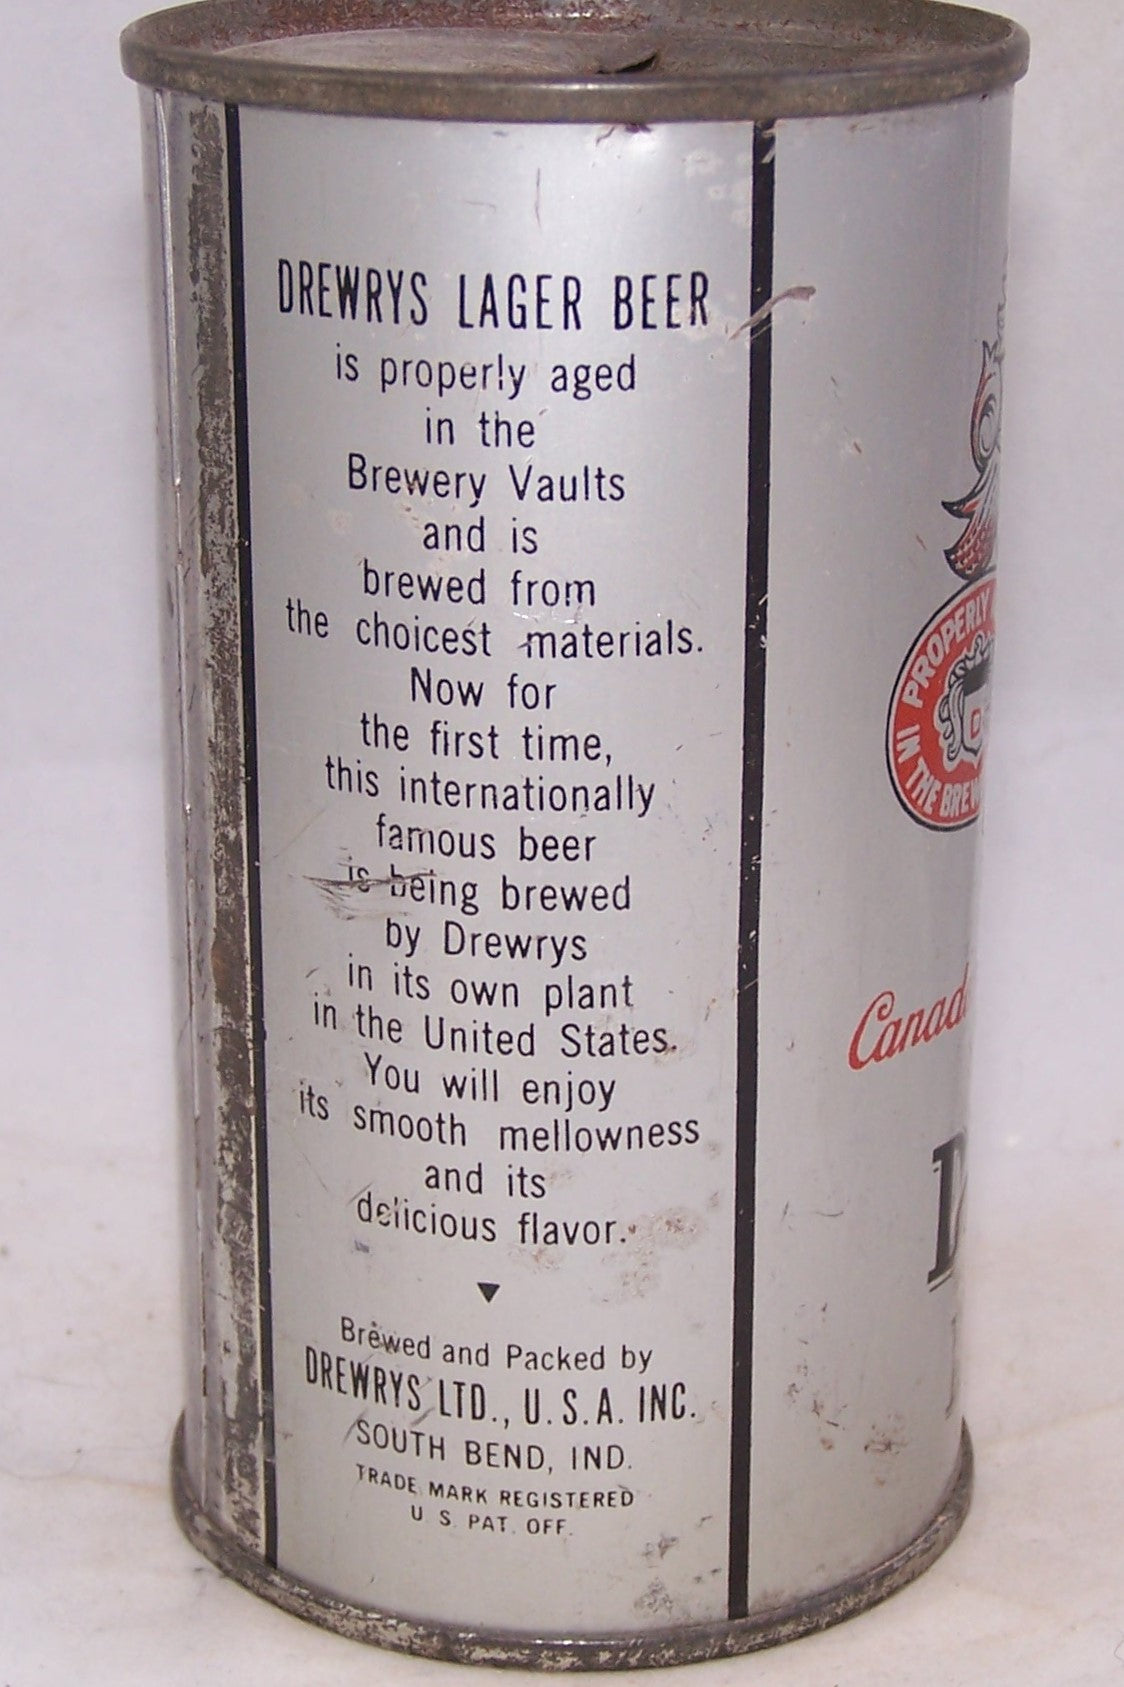 Drewrys Lager Beer Opening Instruction, USBC 55-32, Grade 1-/2+